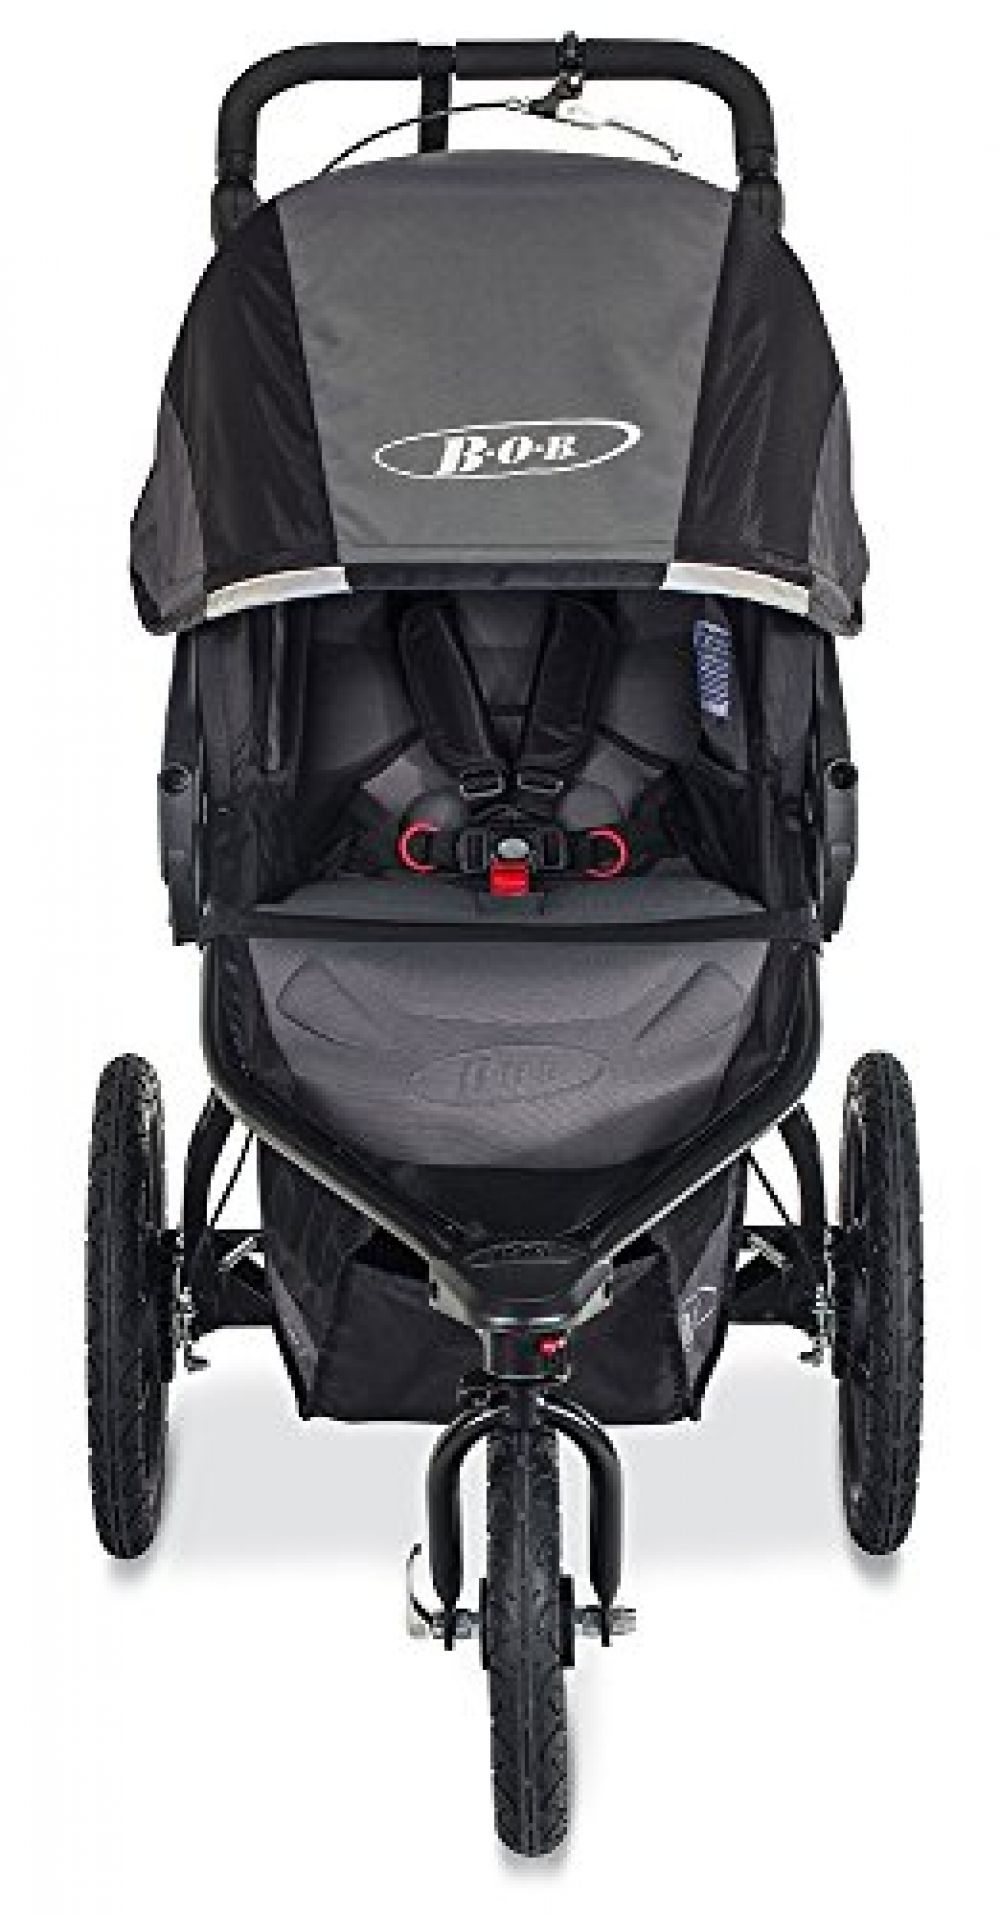 BOB 2016 Revolution PRO Stroller, Black in 2020 Jogging